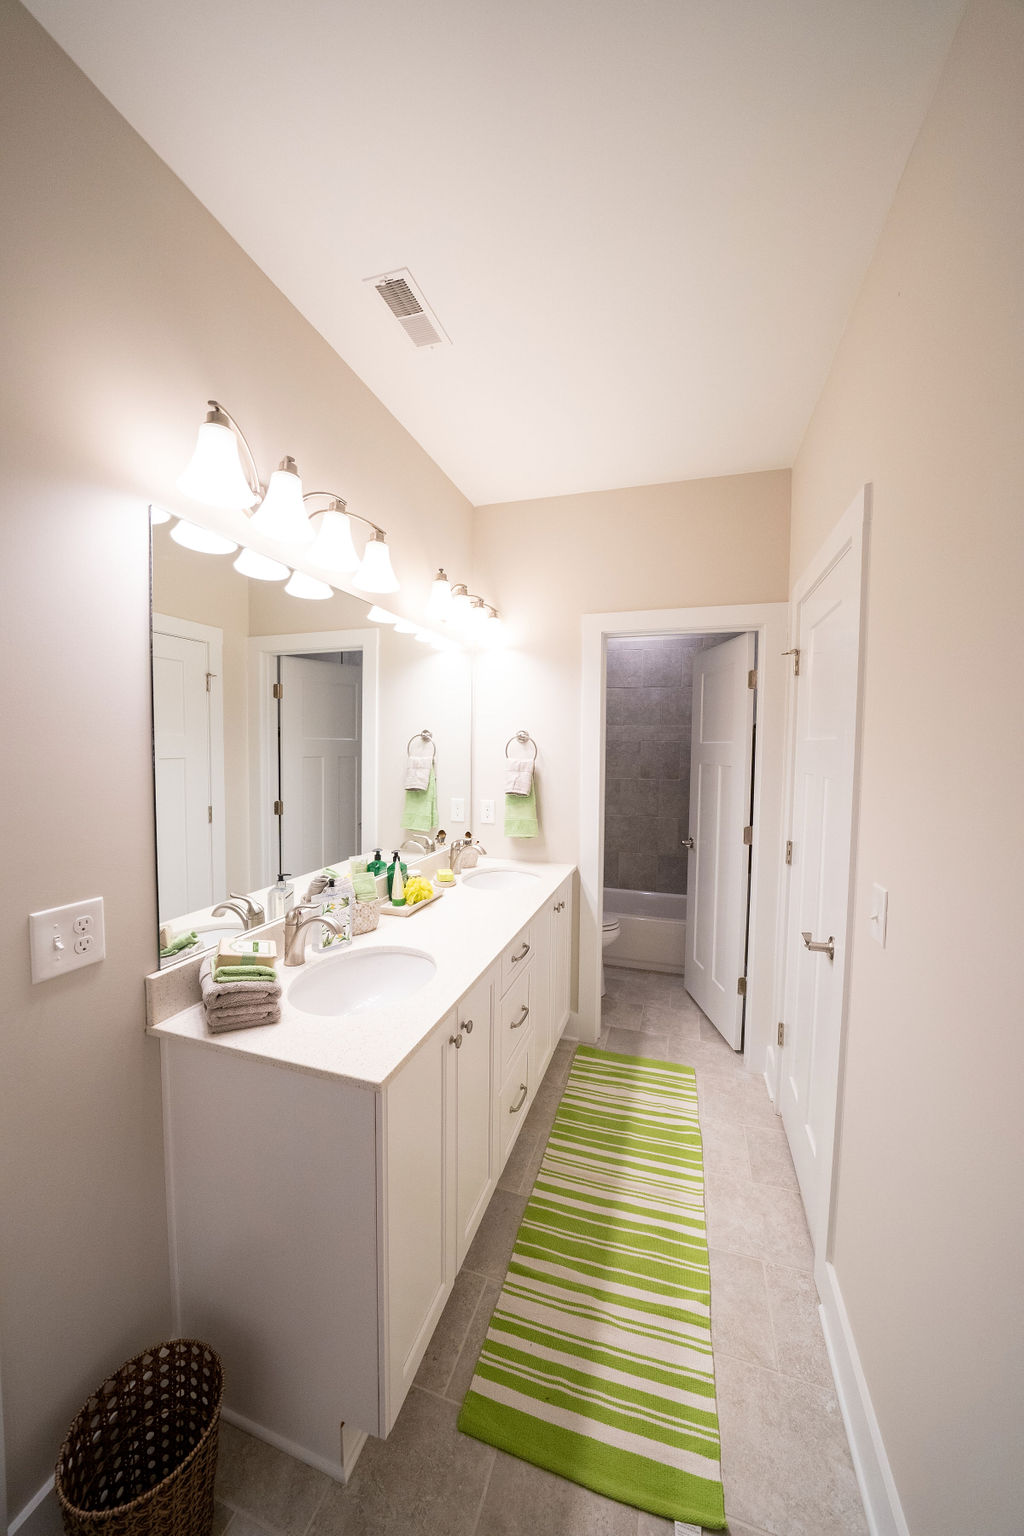 Double vanity bathroom sinks